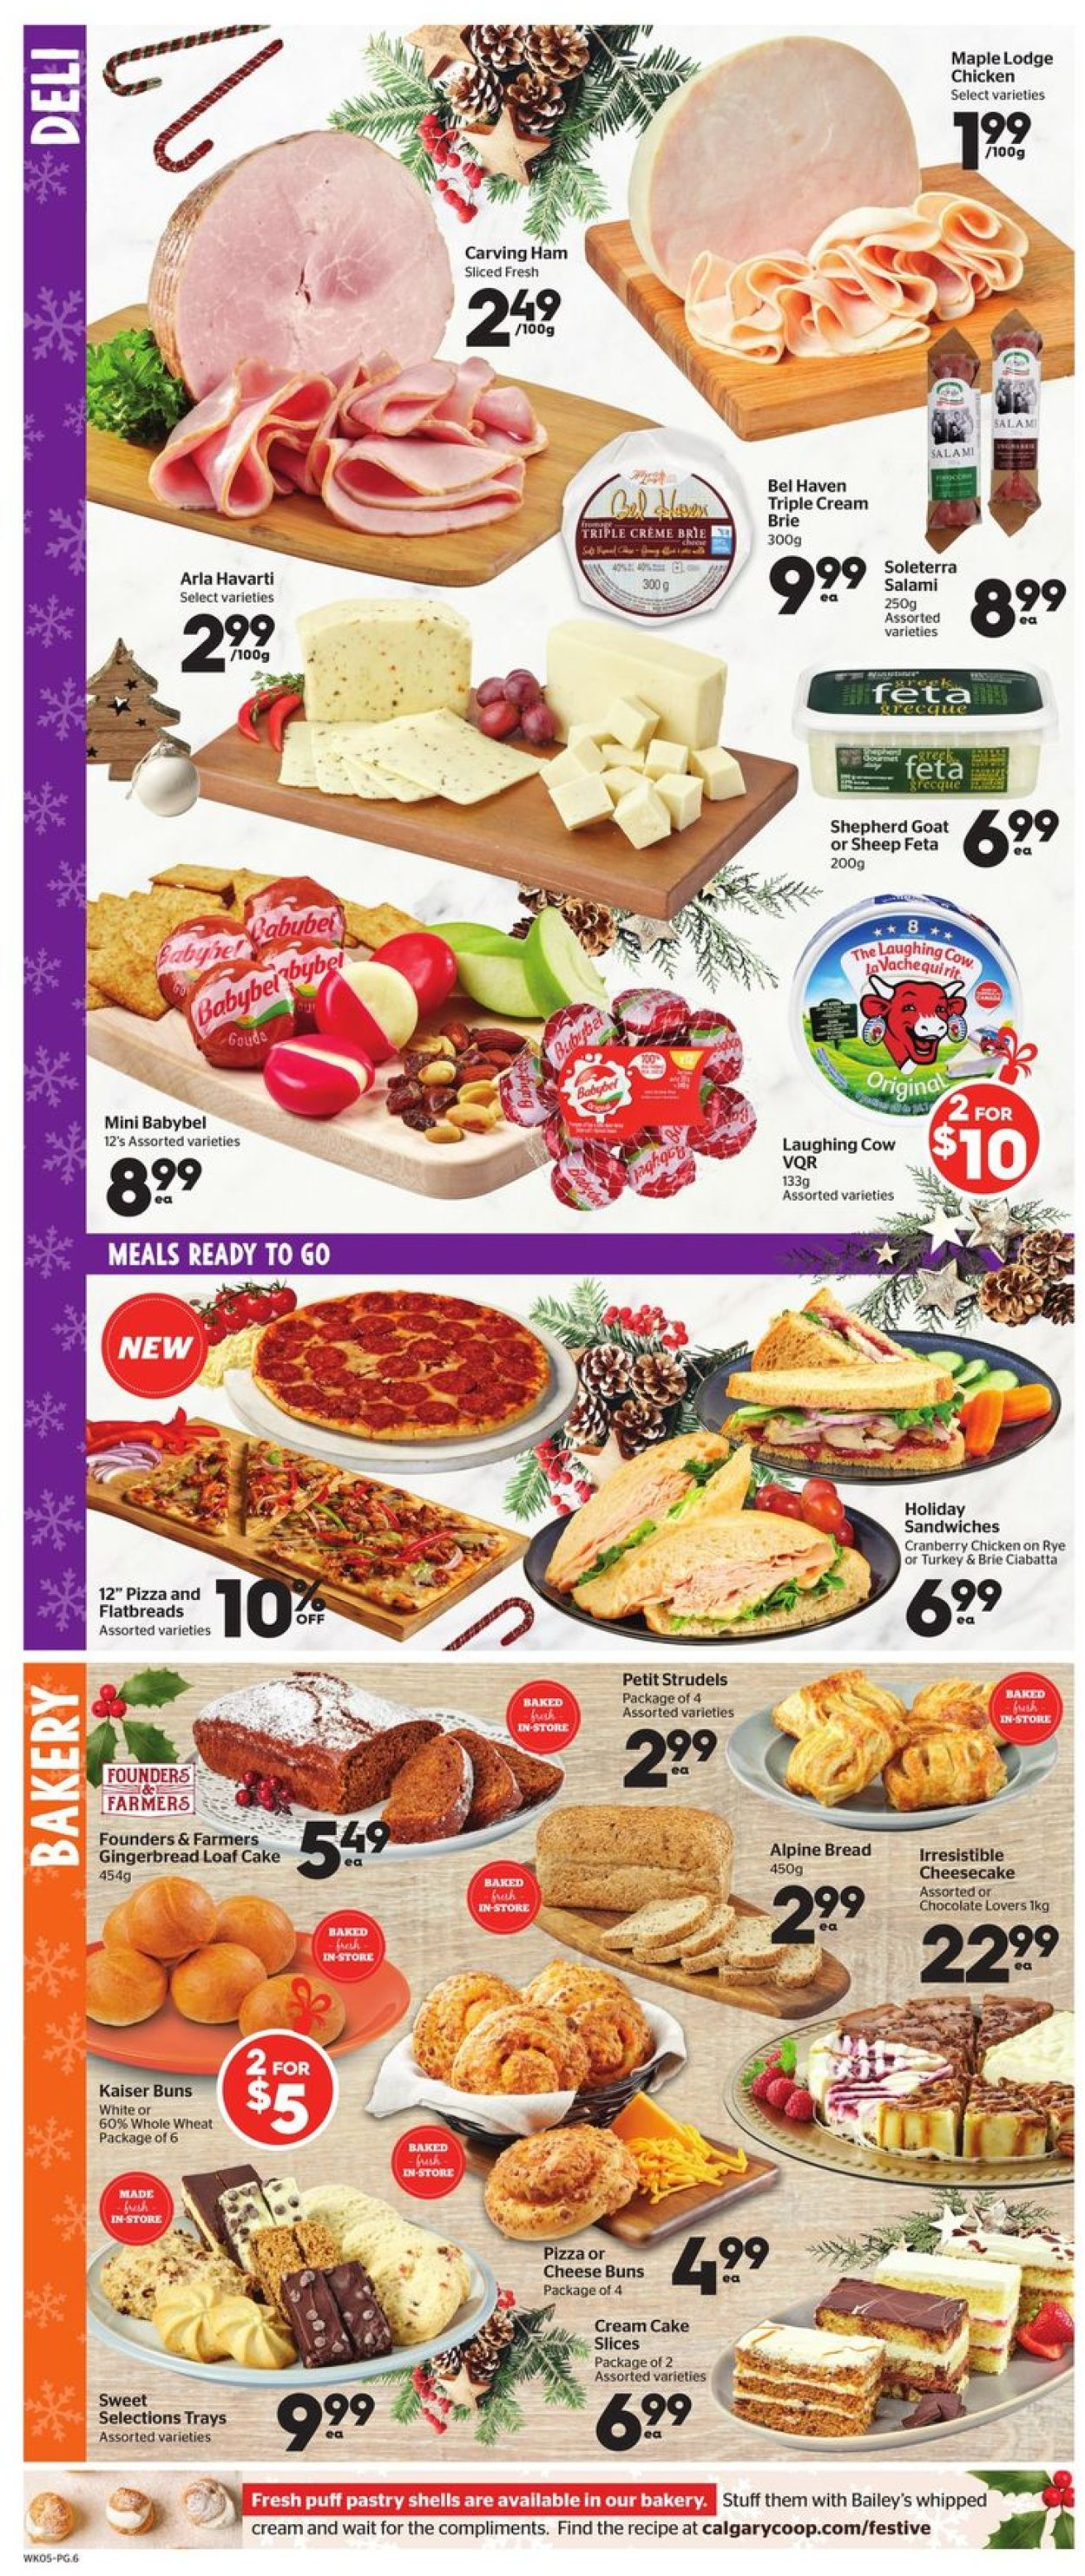 Calgary Co-op - Holidays 2020 Flyer - 12/03-12/09/2020 (Page 6)